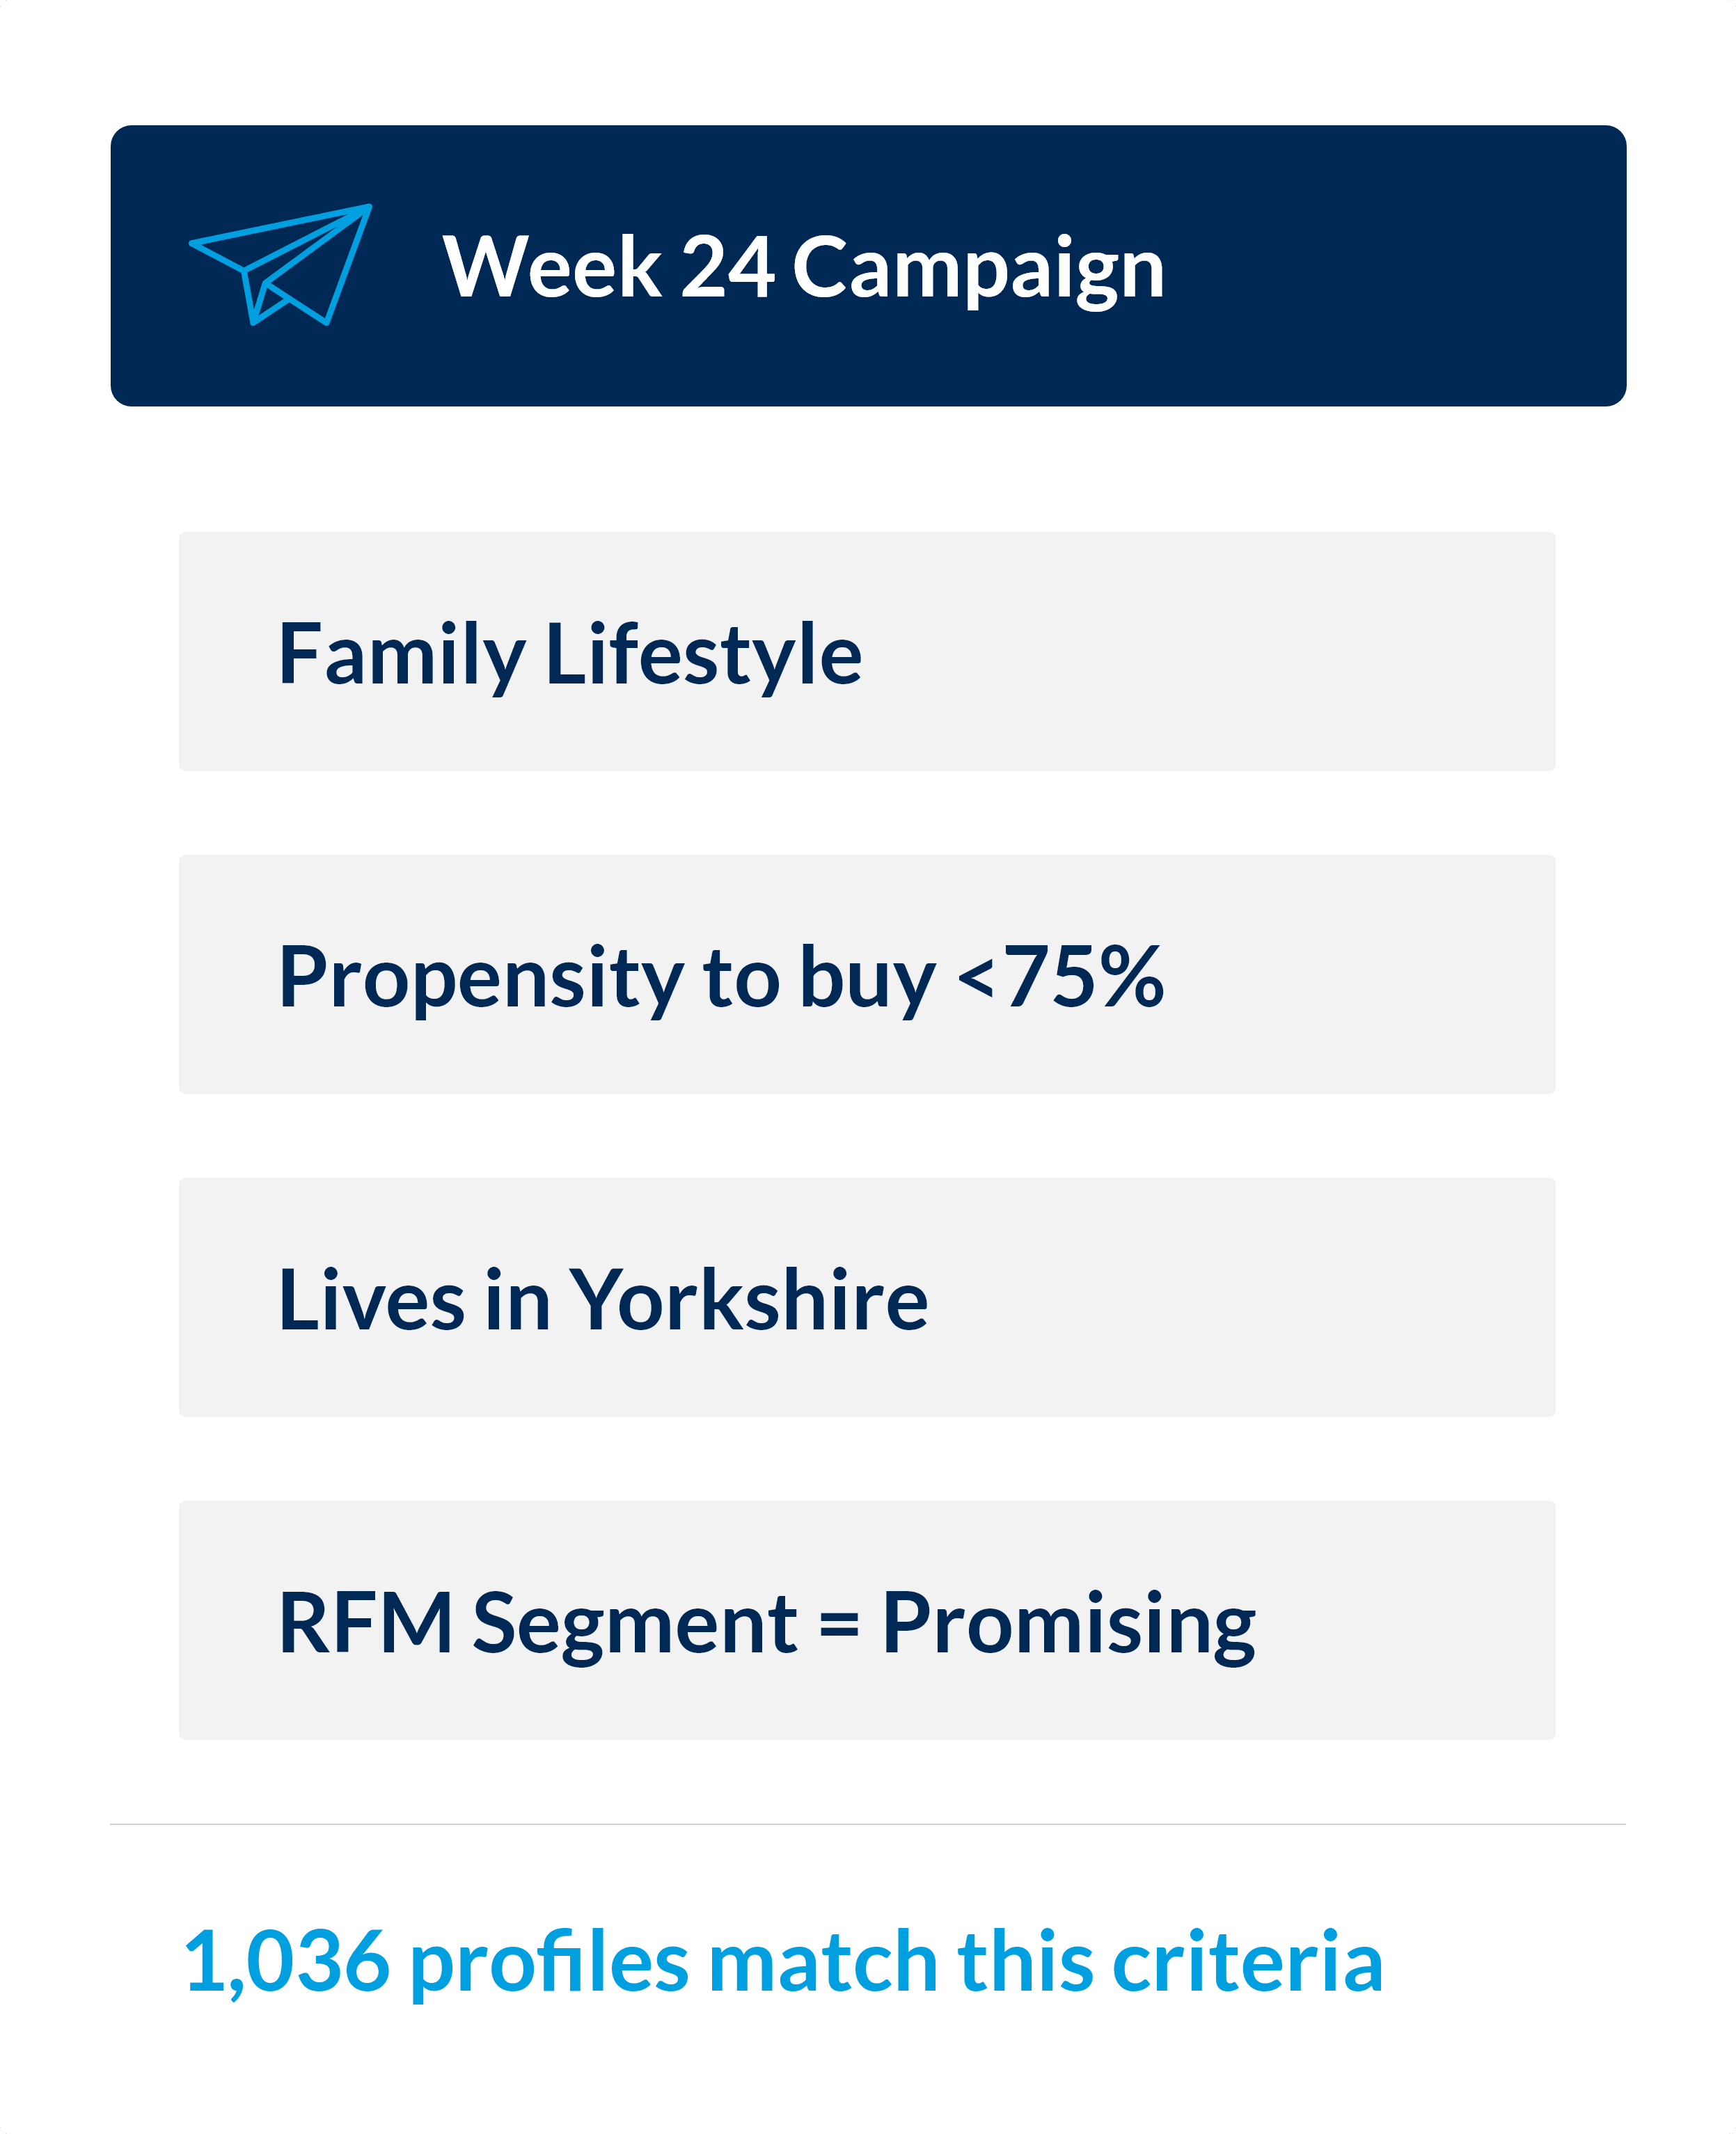 Diagram showing an audience segment made up of the following criteria: family lifestyle, propensity to buy more than 75%, lives in Yorkshire, and in the promising category in RFM. 1,036 profiles match this criteria